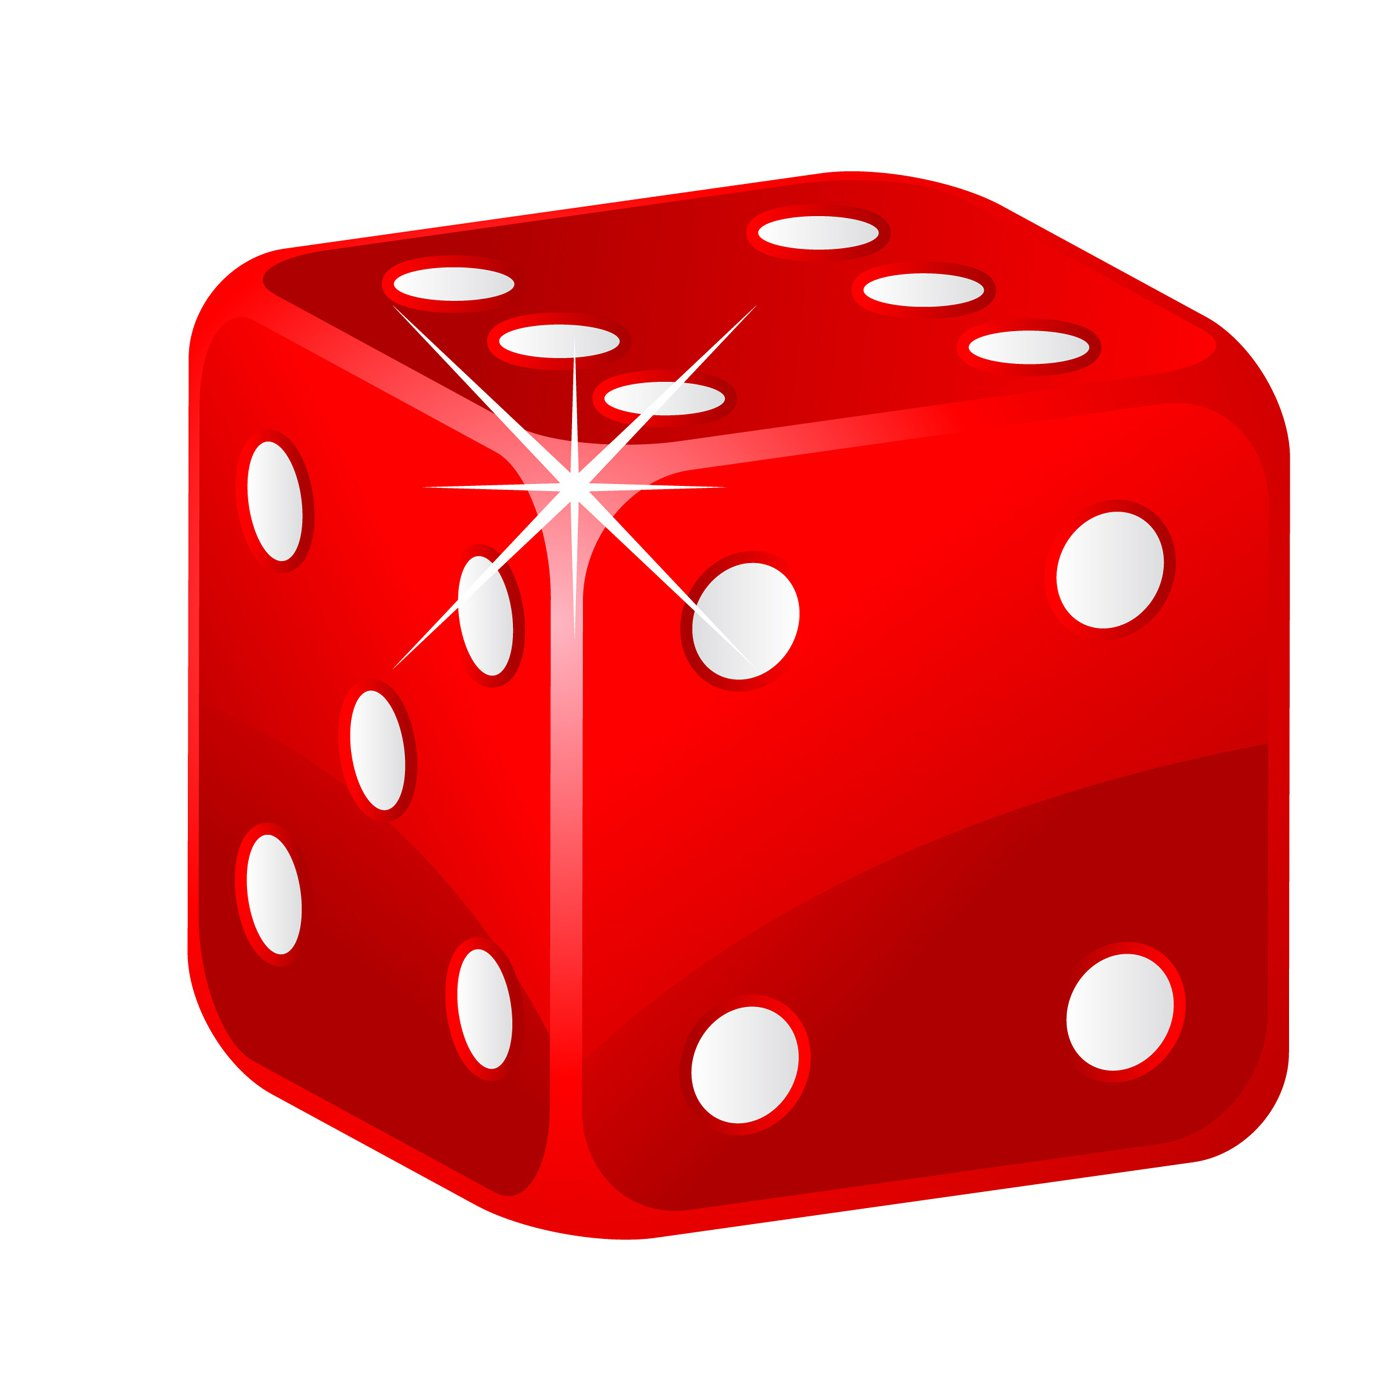 1-6 number cube clipart #8